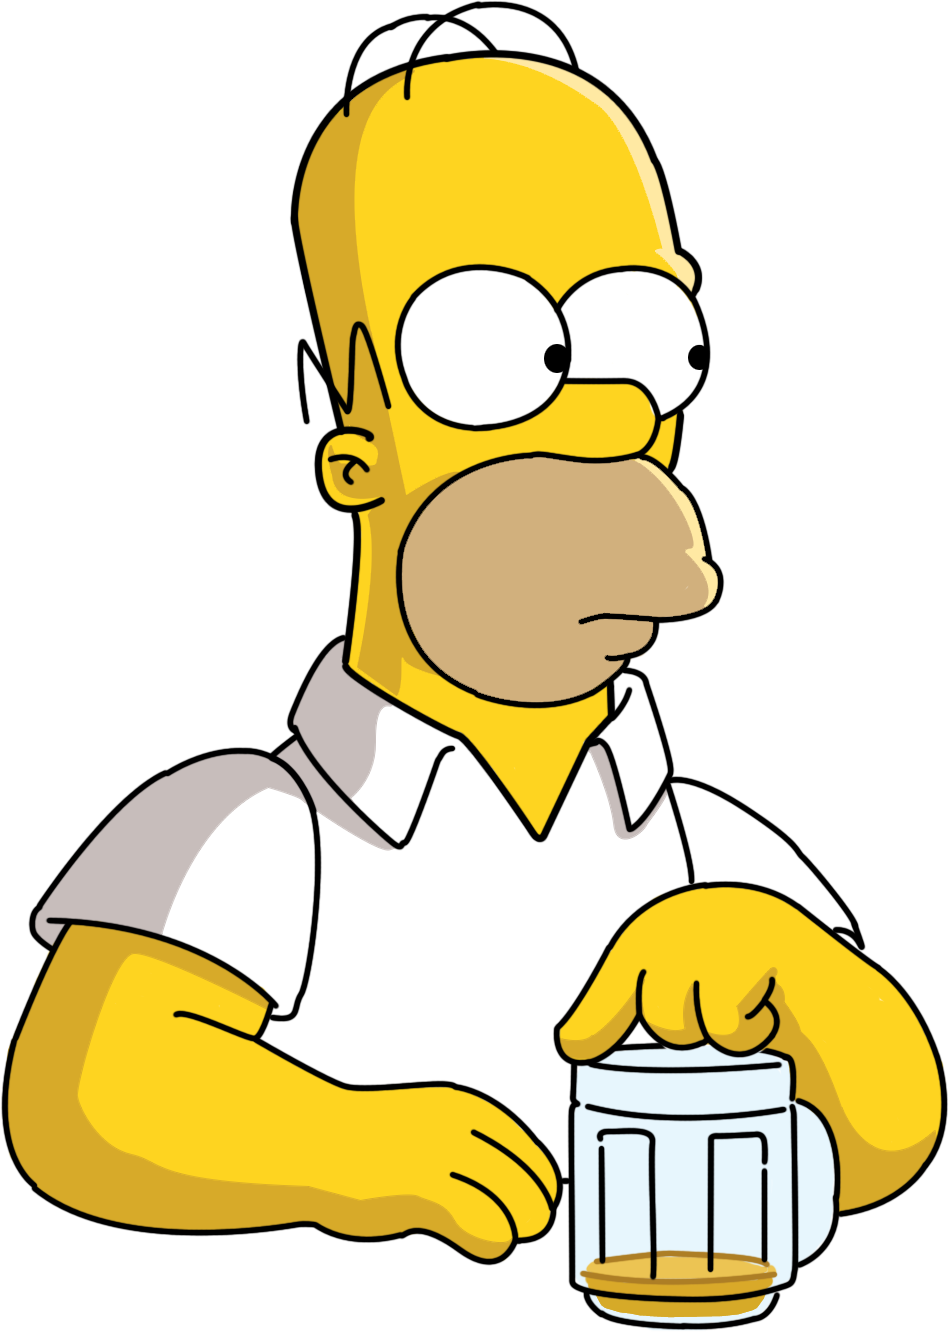 Download and use Simpsons PNG in High Resolution